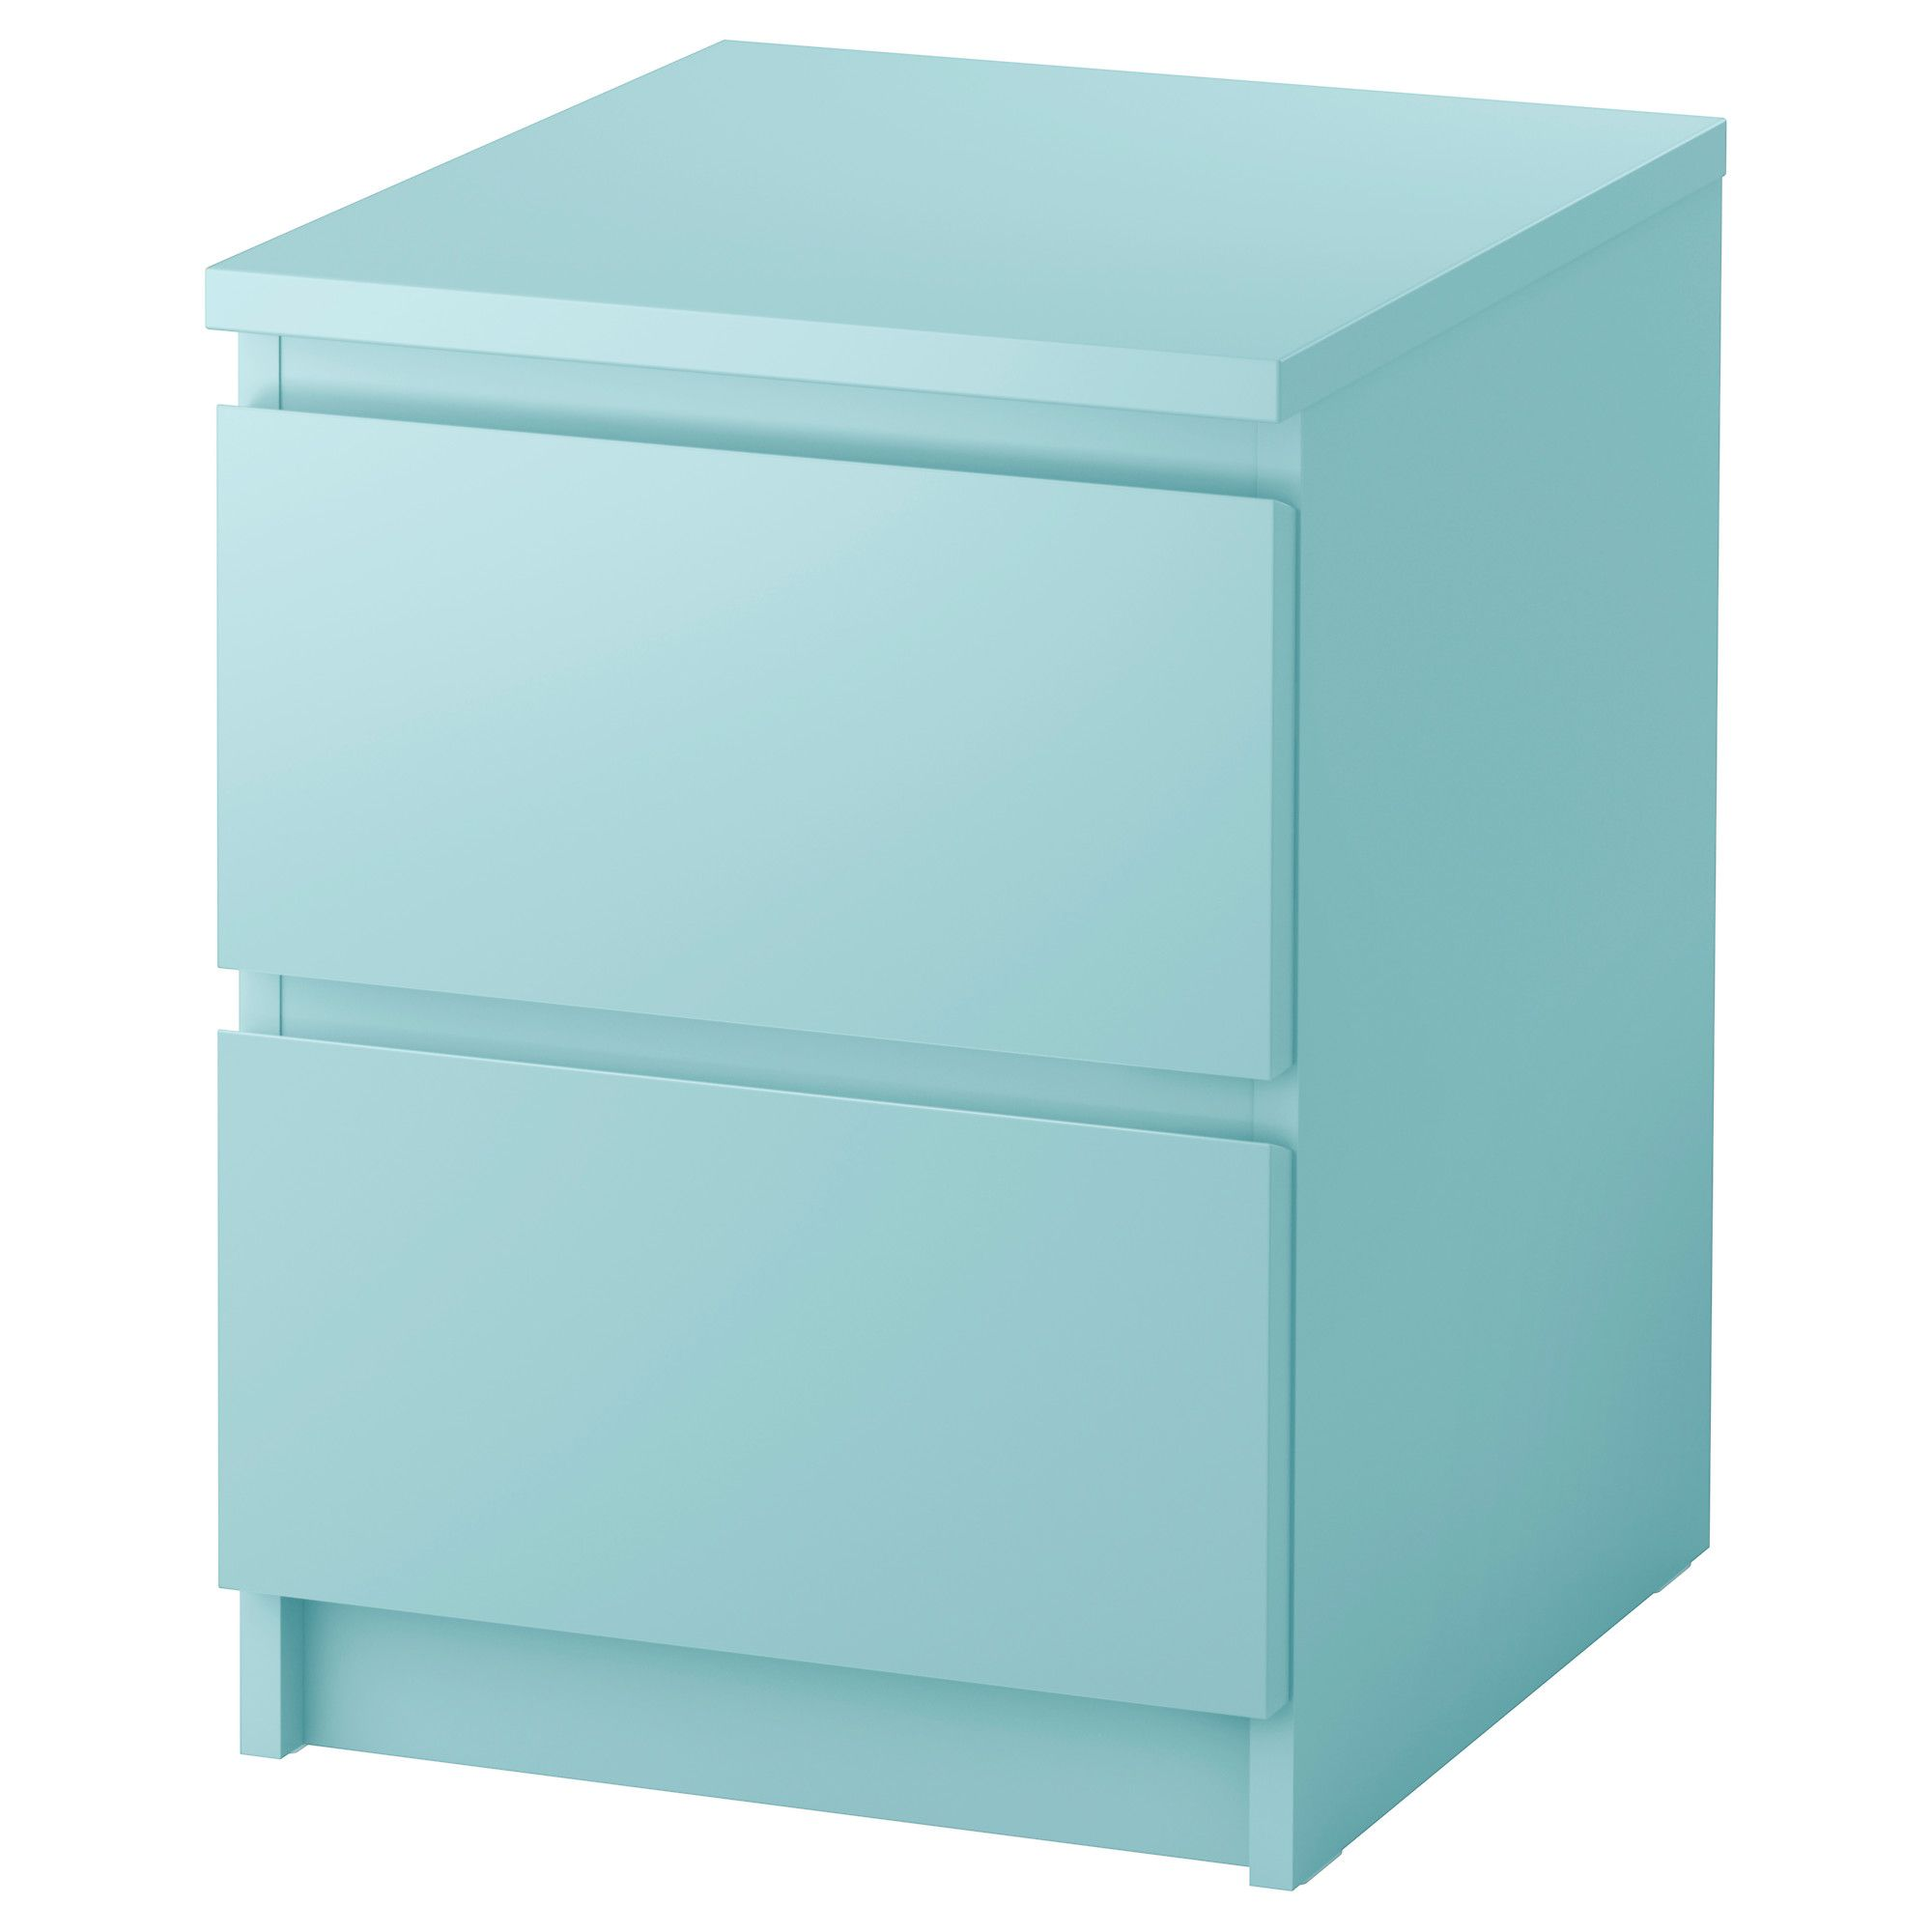 Malm Ablagetisch Ikea Malm Chest Of 2 Drawers Can Also Be Used As A Bedside Table